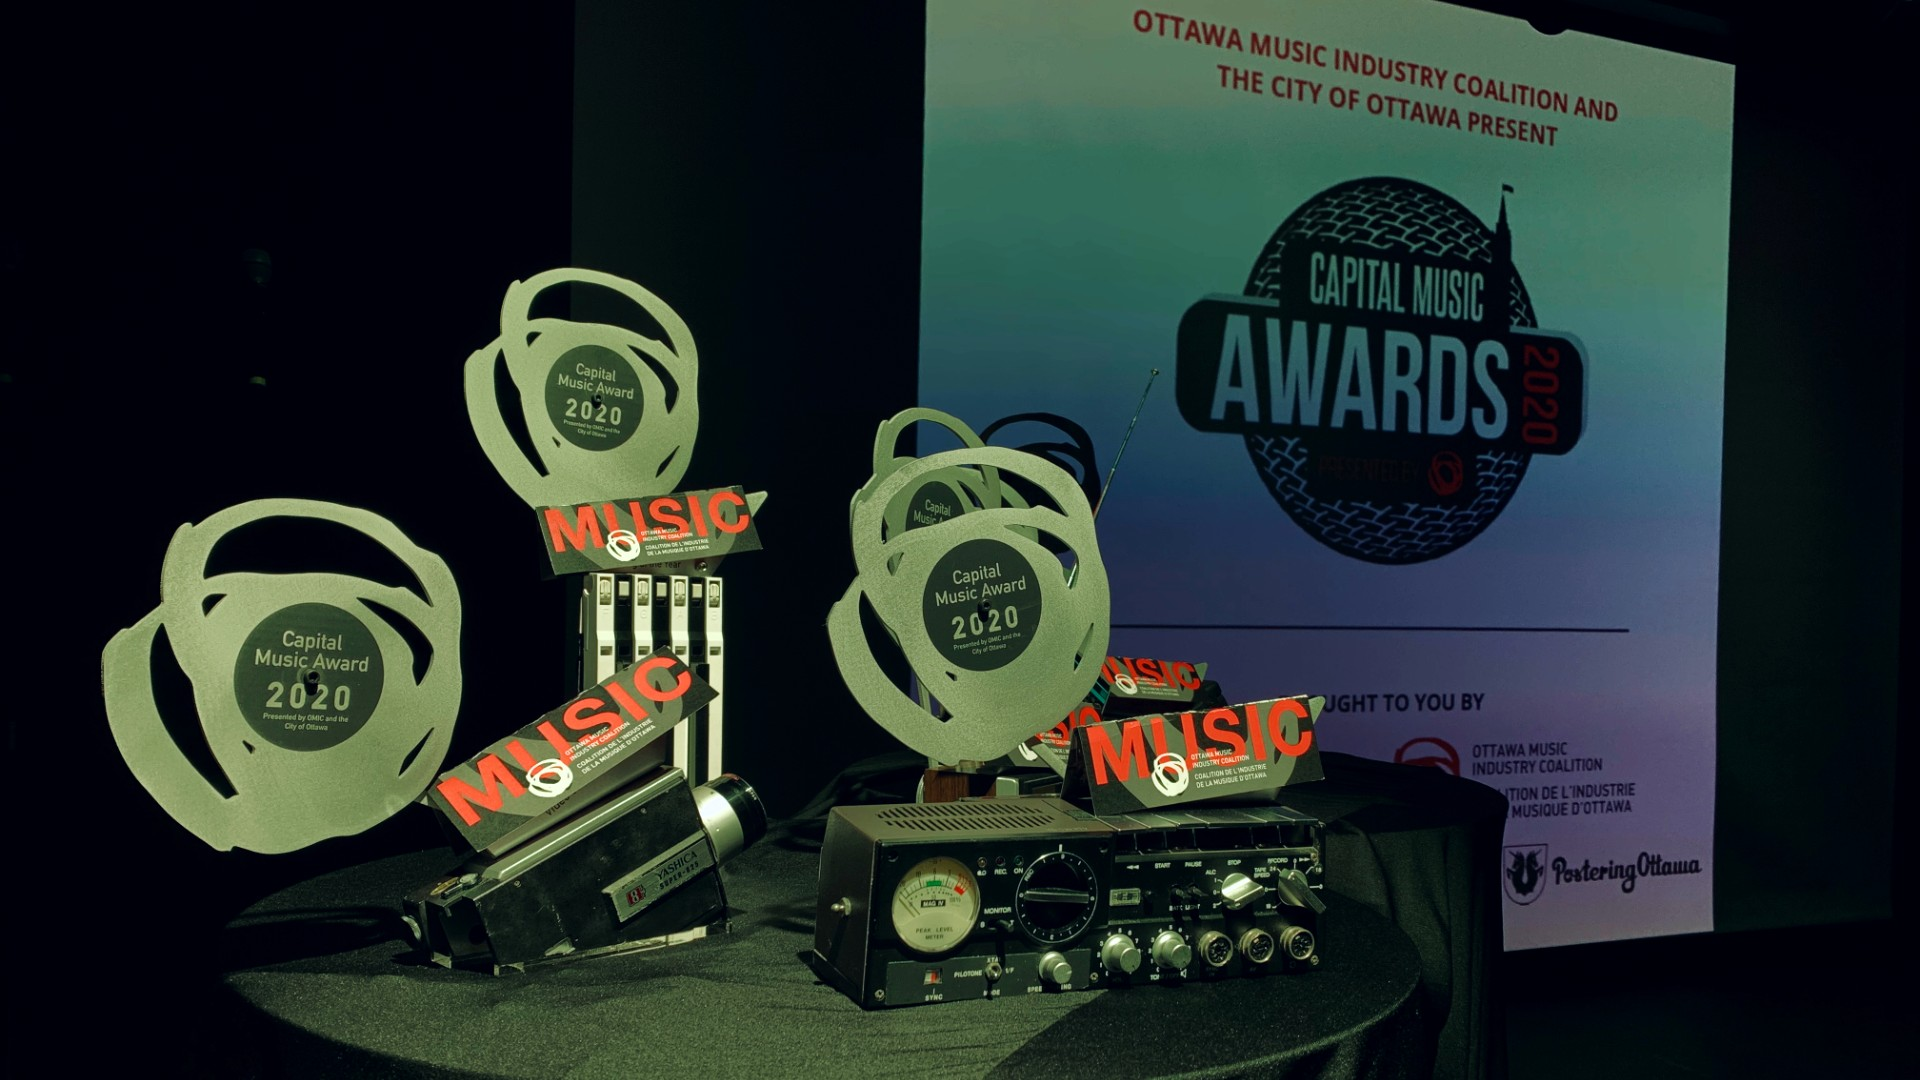 Trophies for the Capital Music Awards line are displayed on stage.